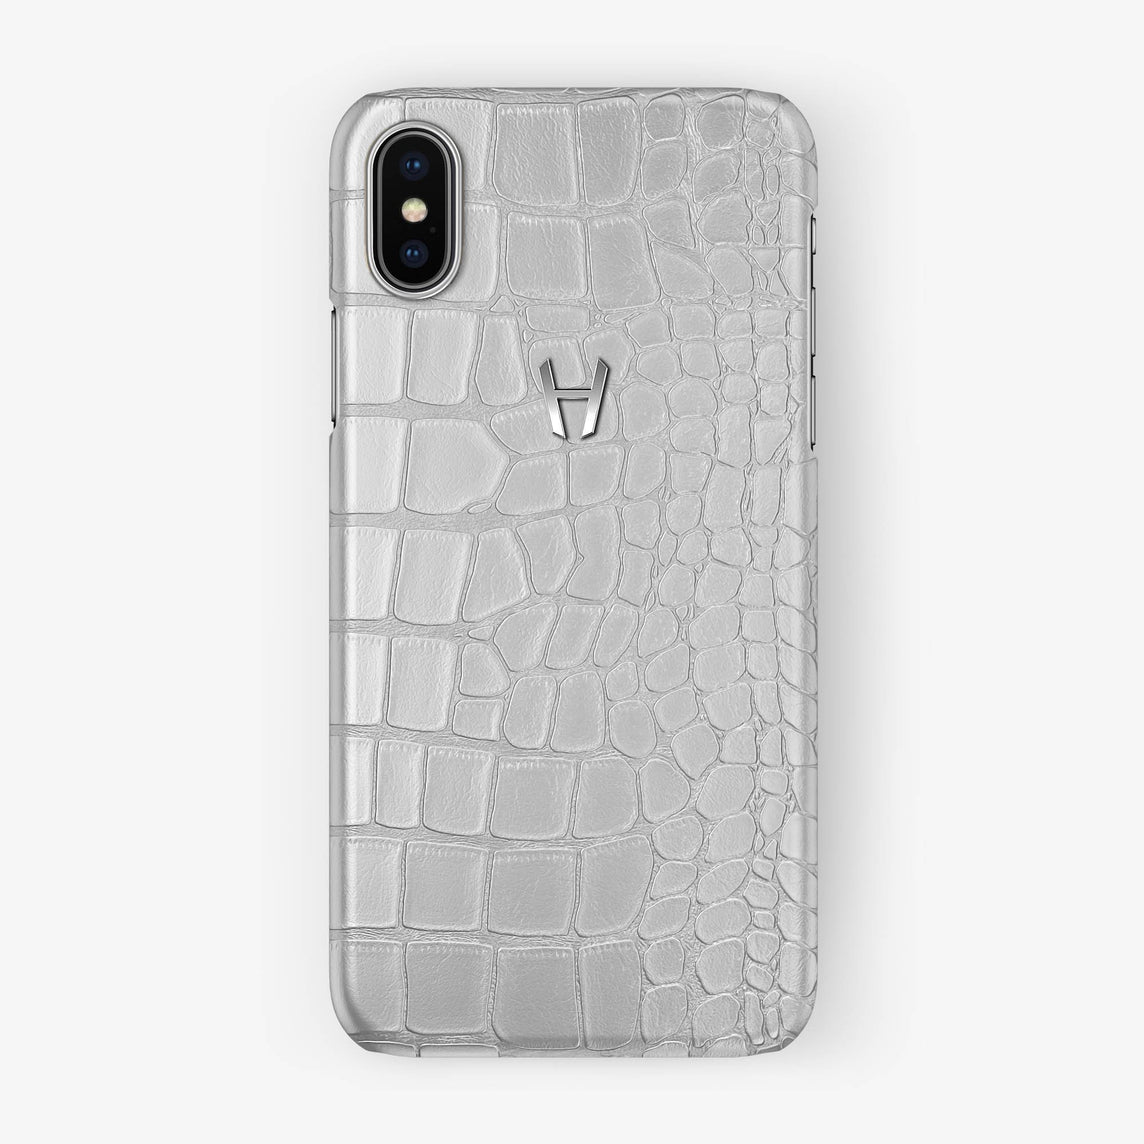 Alligator Case iPhone X/Xs | White - Stainless Steel without-personalization